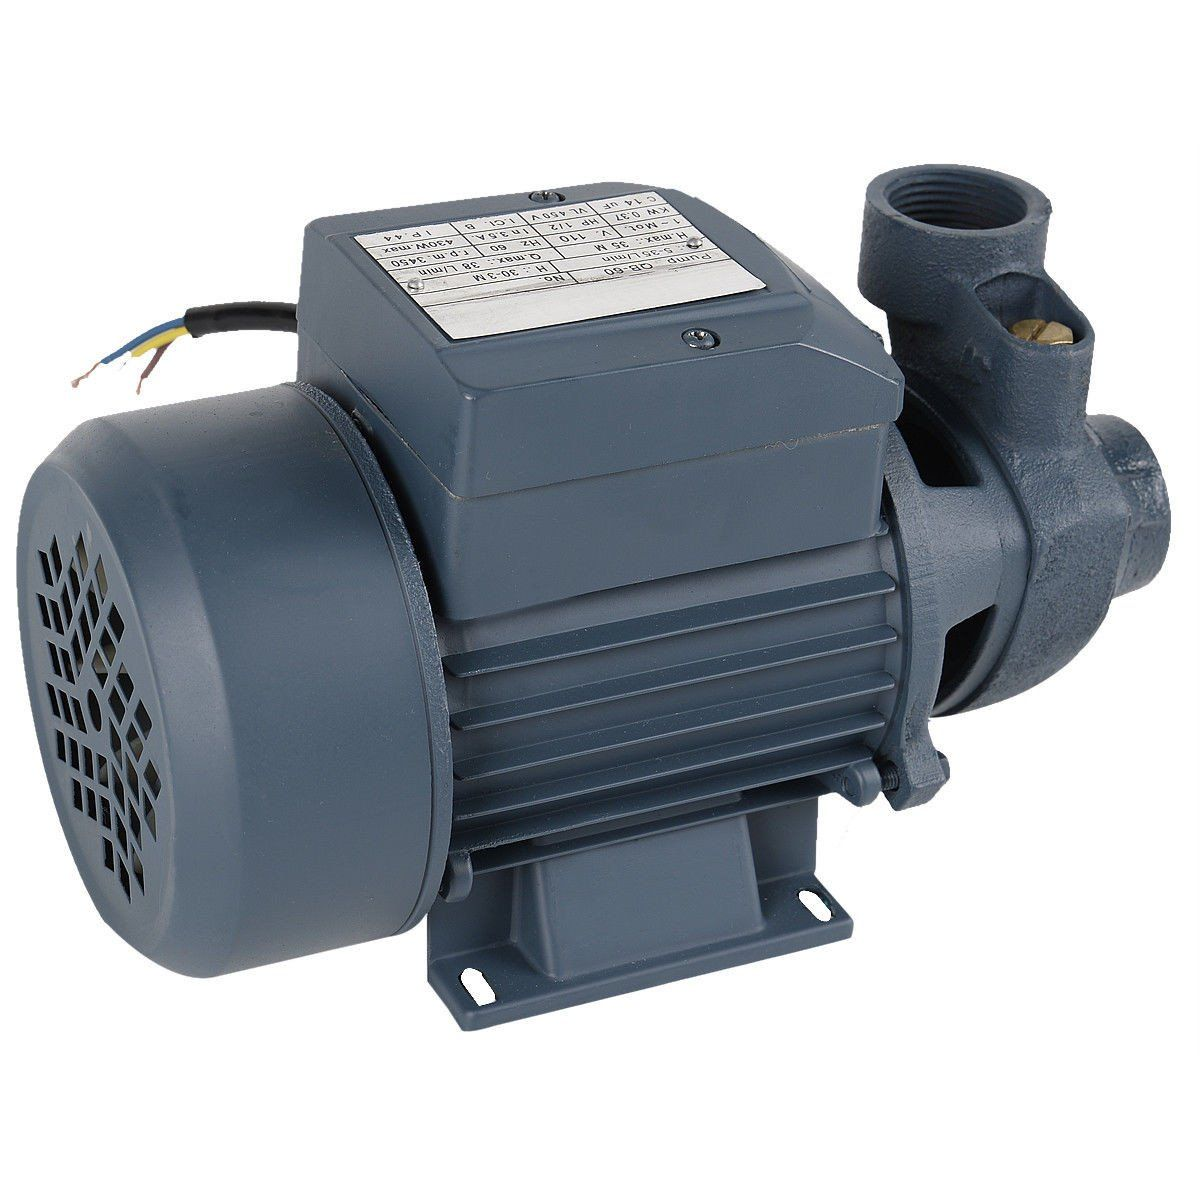 Gizmo Supply 1 2 Hp Electric Water Pump Make Sure To Take A Look At This Awesome Product This Is An Affili Electric Water Pump Pond Accessories Water Pumps